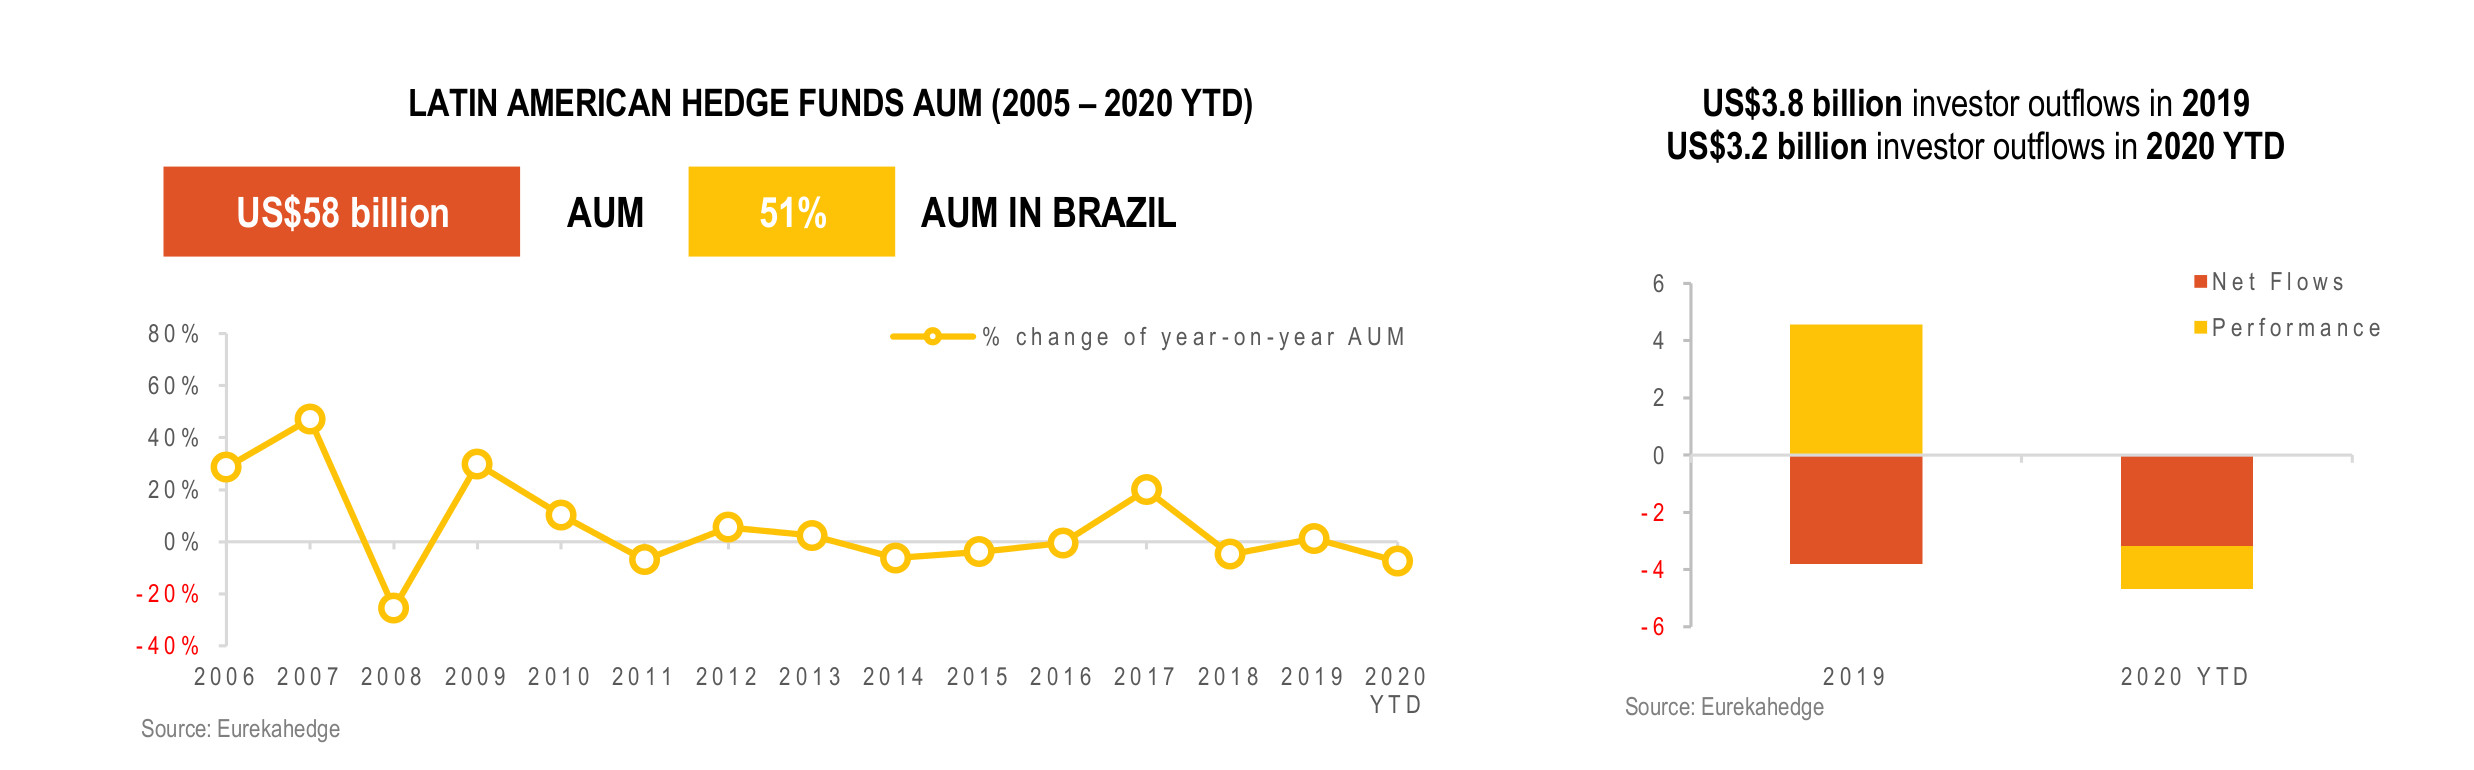 Latin American Hedge Funds Infographic September 2020 - AUM